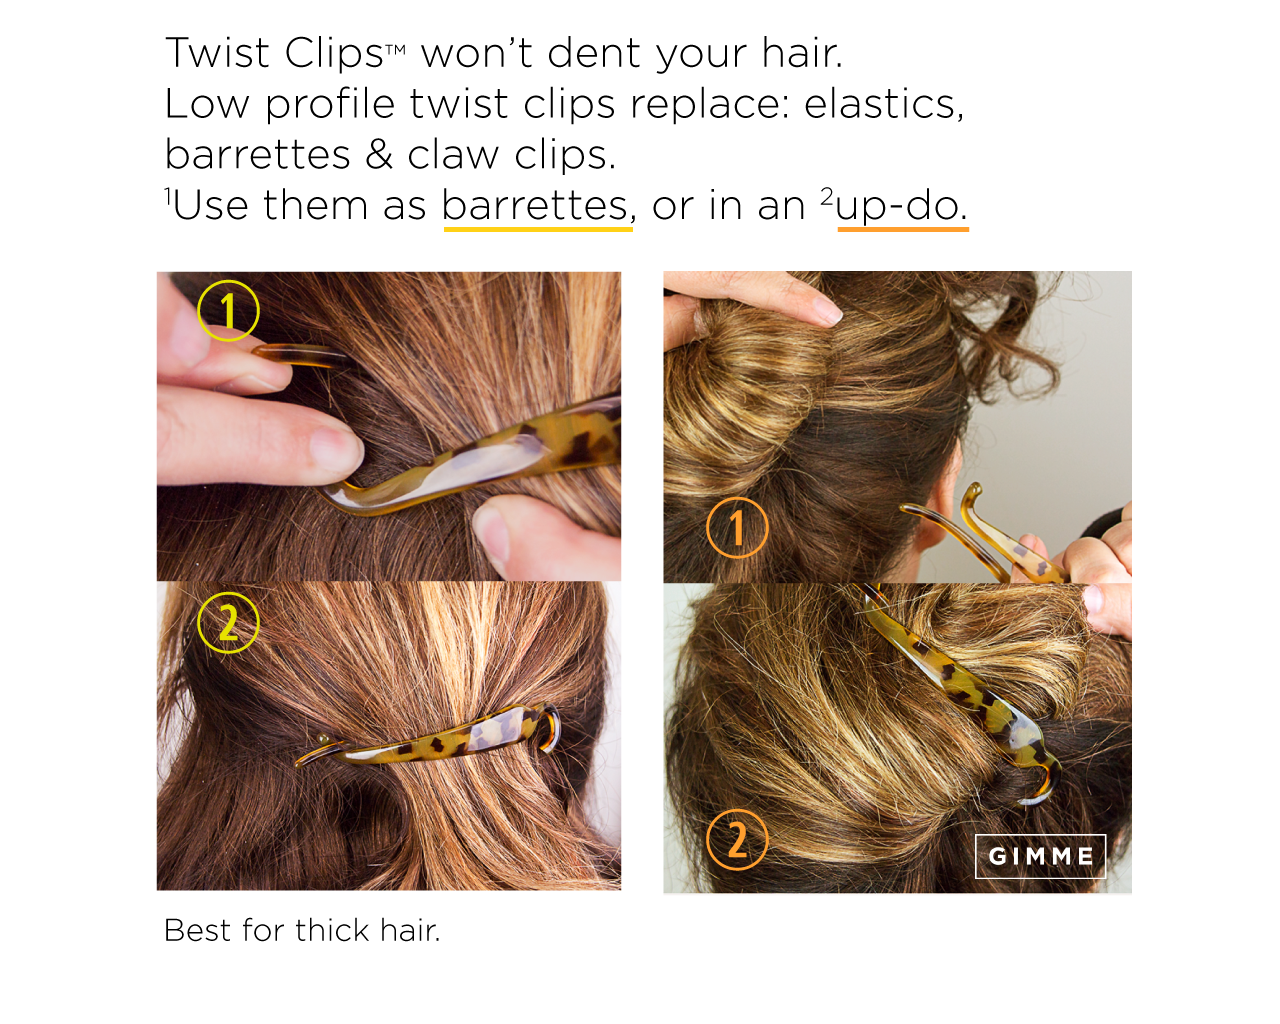 banner Gimme hair accessories tools. Bananna clip updo